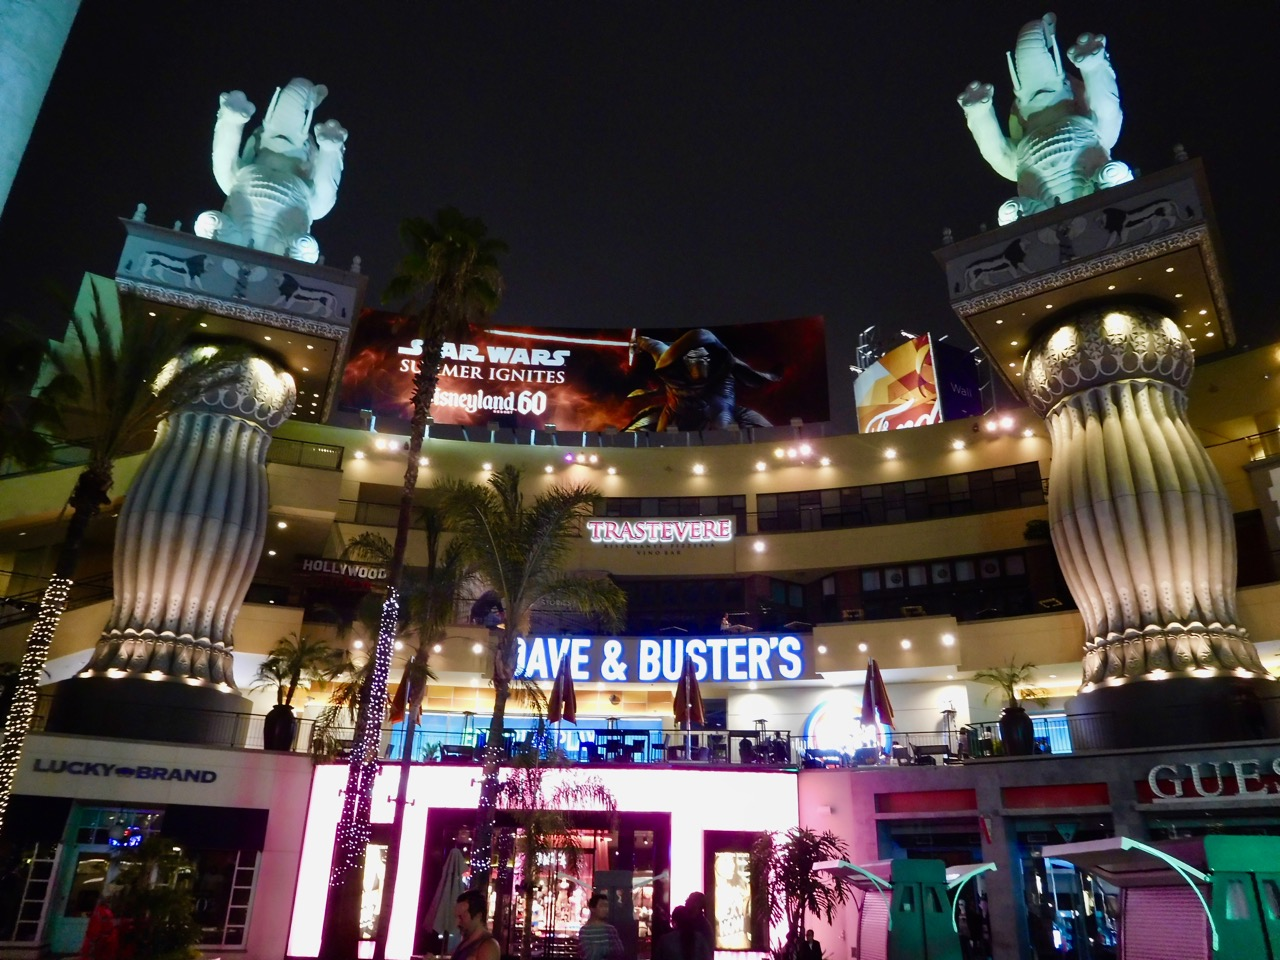 3 Days in L.A. - Hollywood Boulevard at night (2)